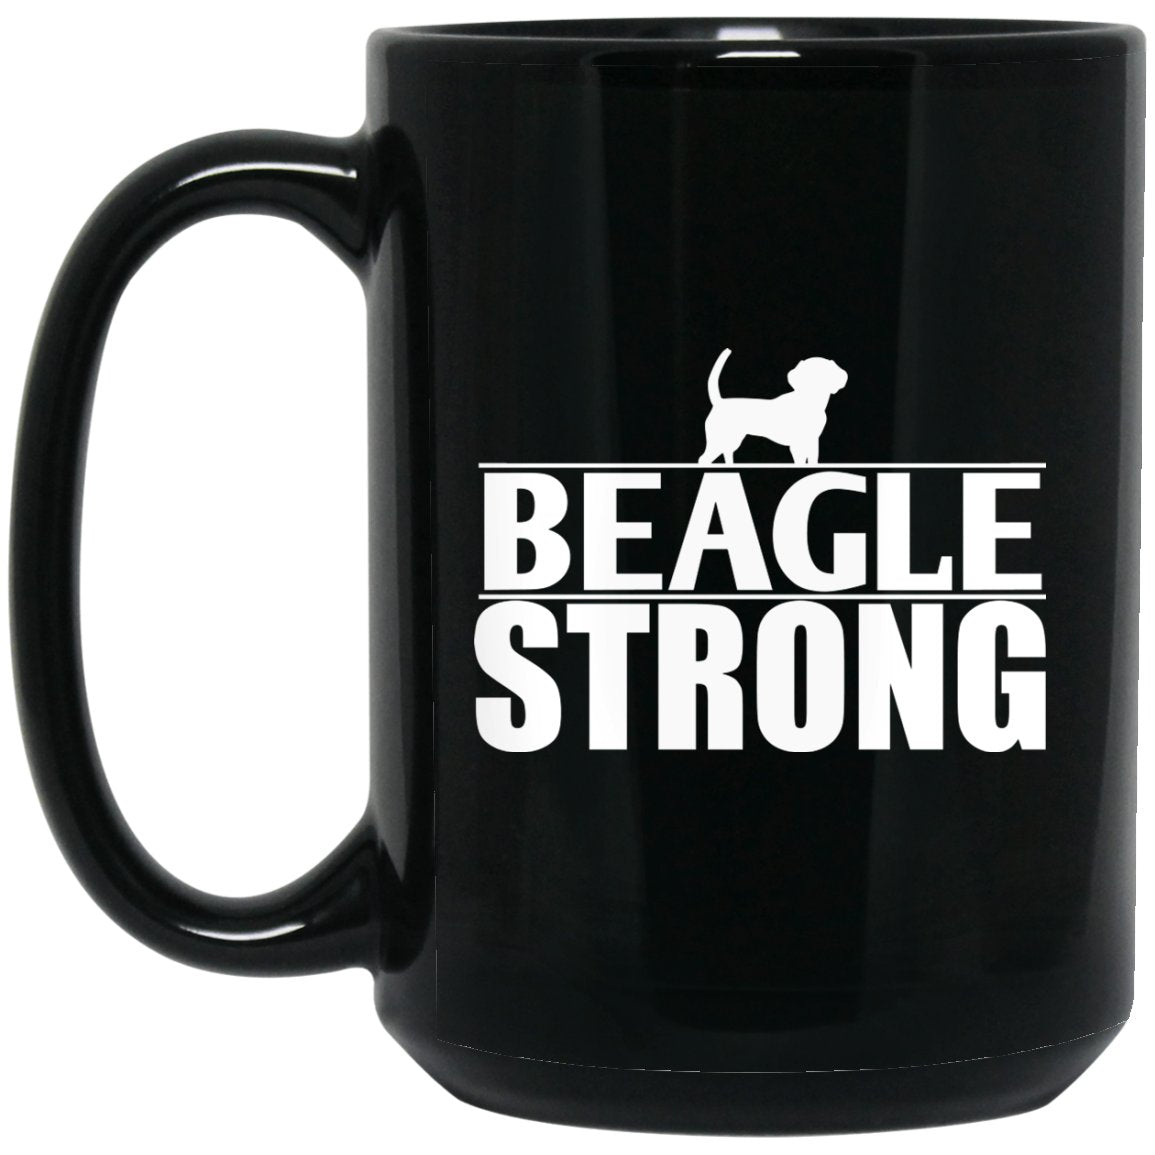 Awesome Beagle - Beagle Strong Large Black Mug